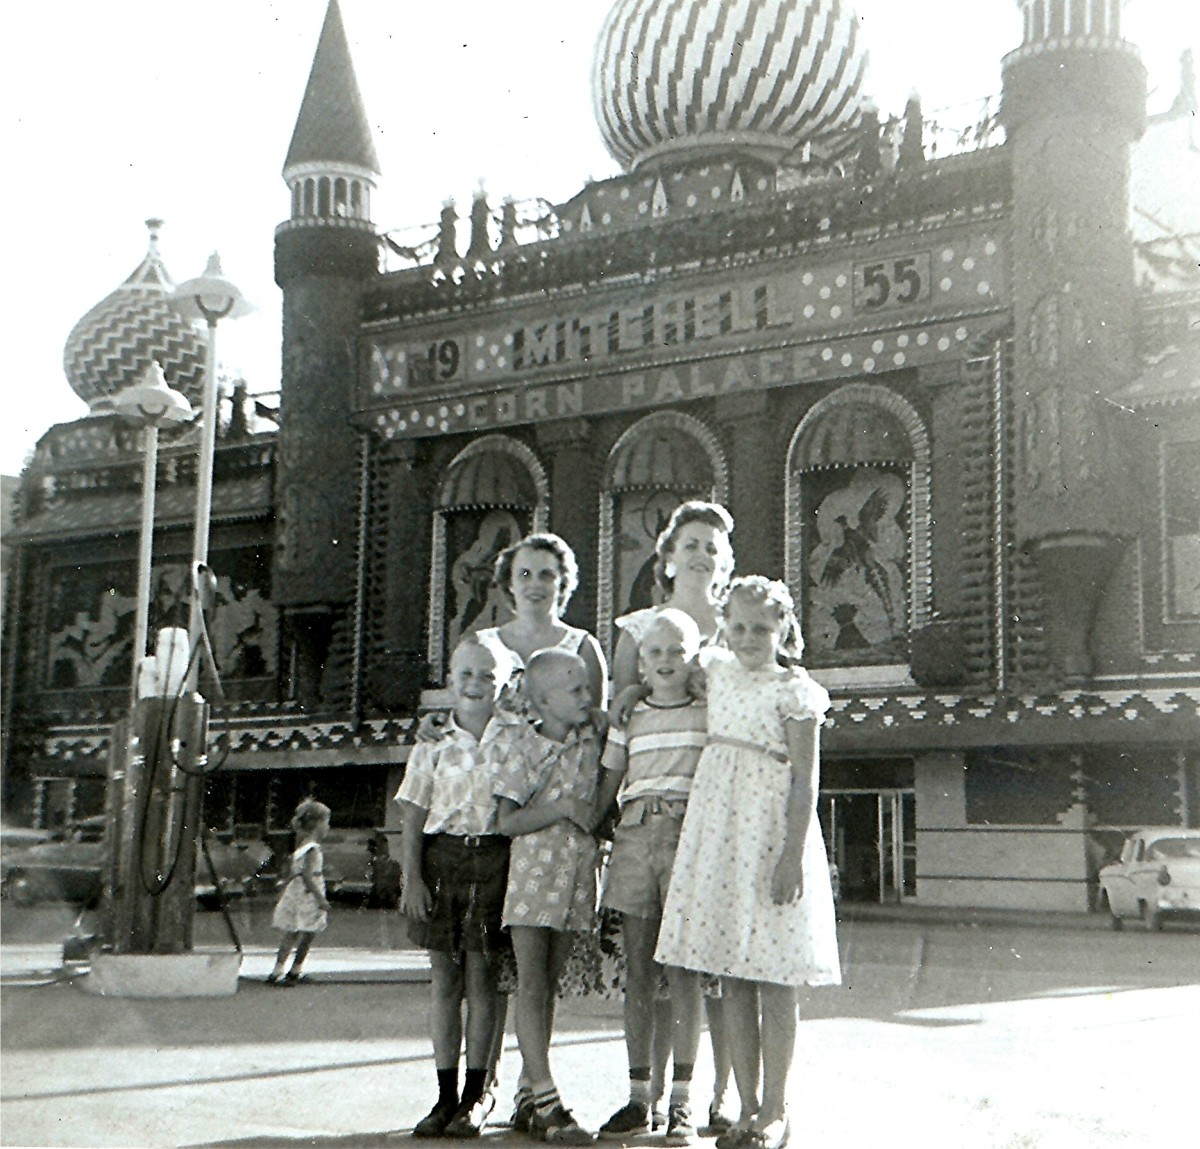 Marge, Carol, Johnny, Billy, Tommy and Peggy posing in front of the Mitchell Corn Palace, 1950s